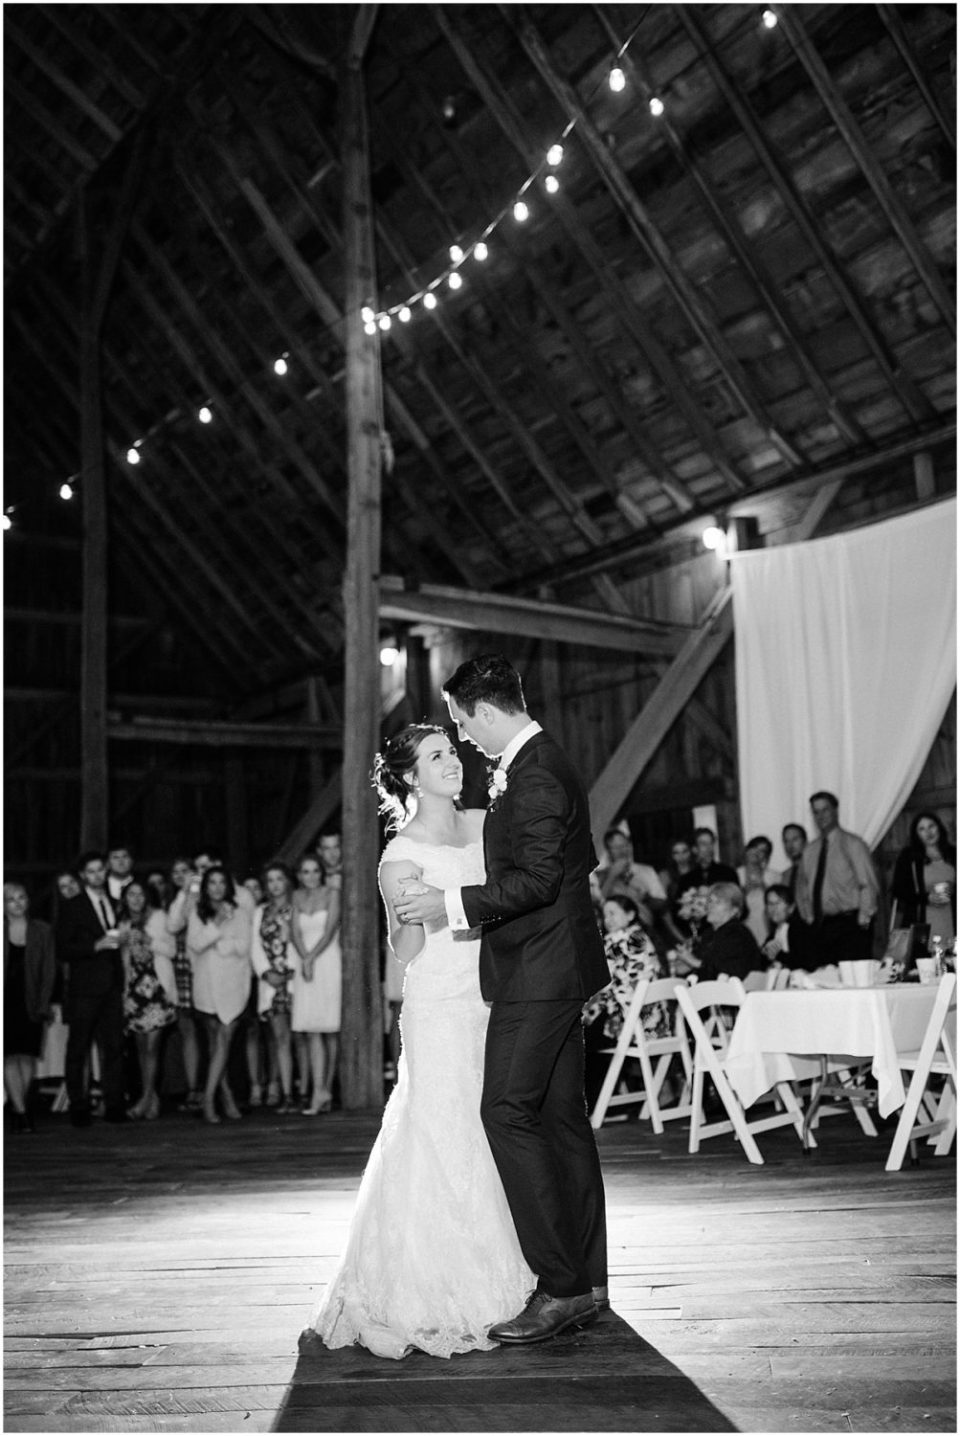 Cameron and Tia Our Wedding Music Chocies doing a first dance